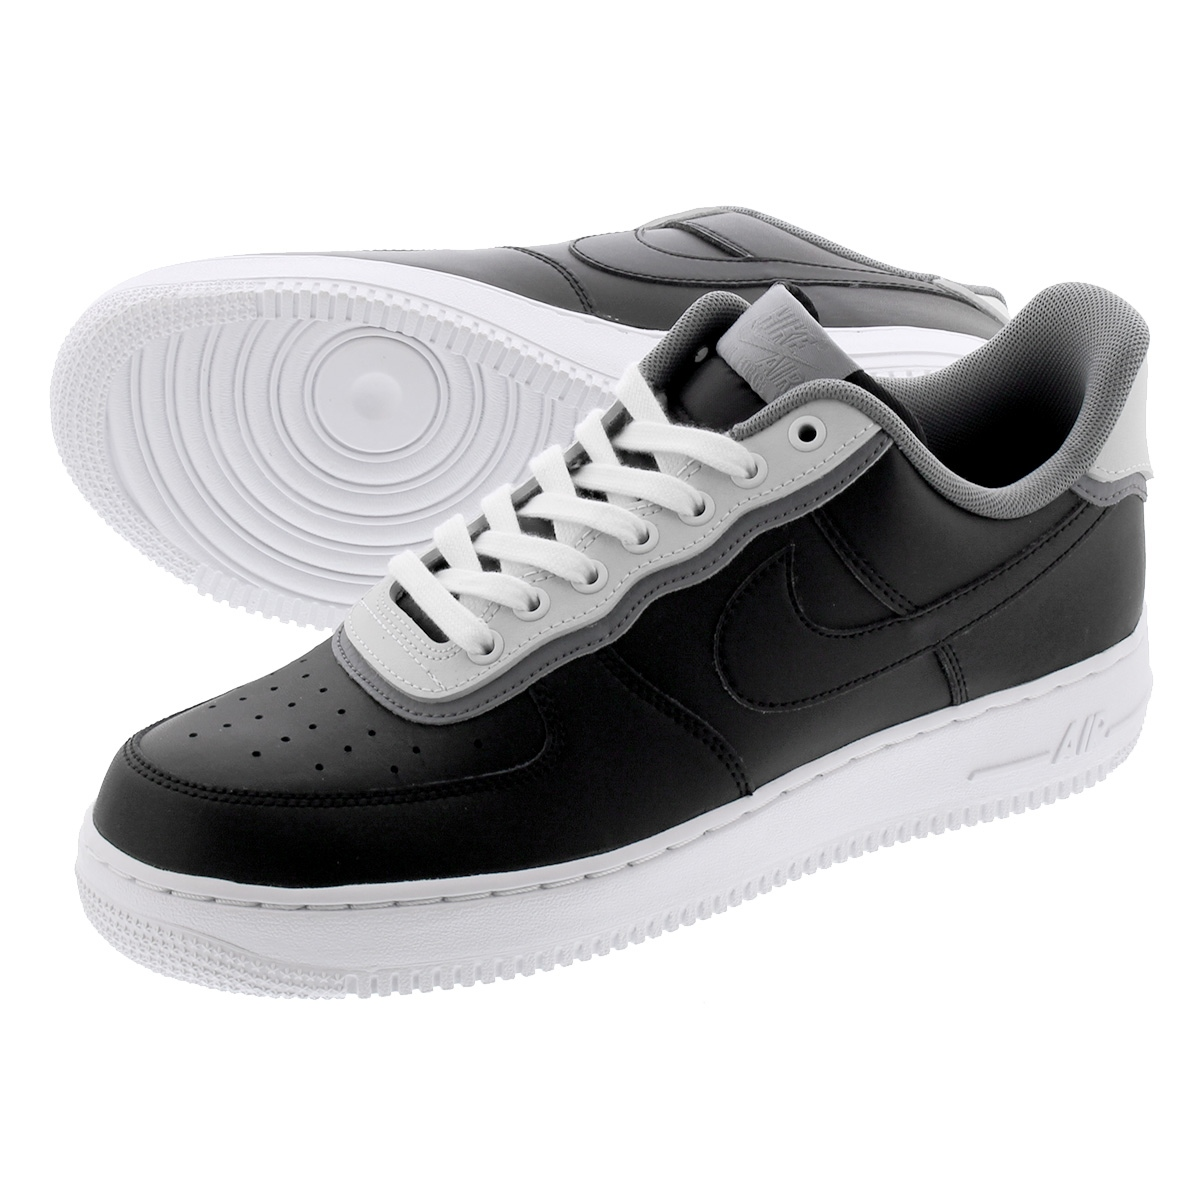 NIKE AIR FORCE 1 '07 LV8 1 Nike air force 1 '07 LV8 1 BLACKBLACKPURE PLATINUMCOOL GREY ao2439 002